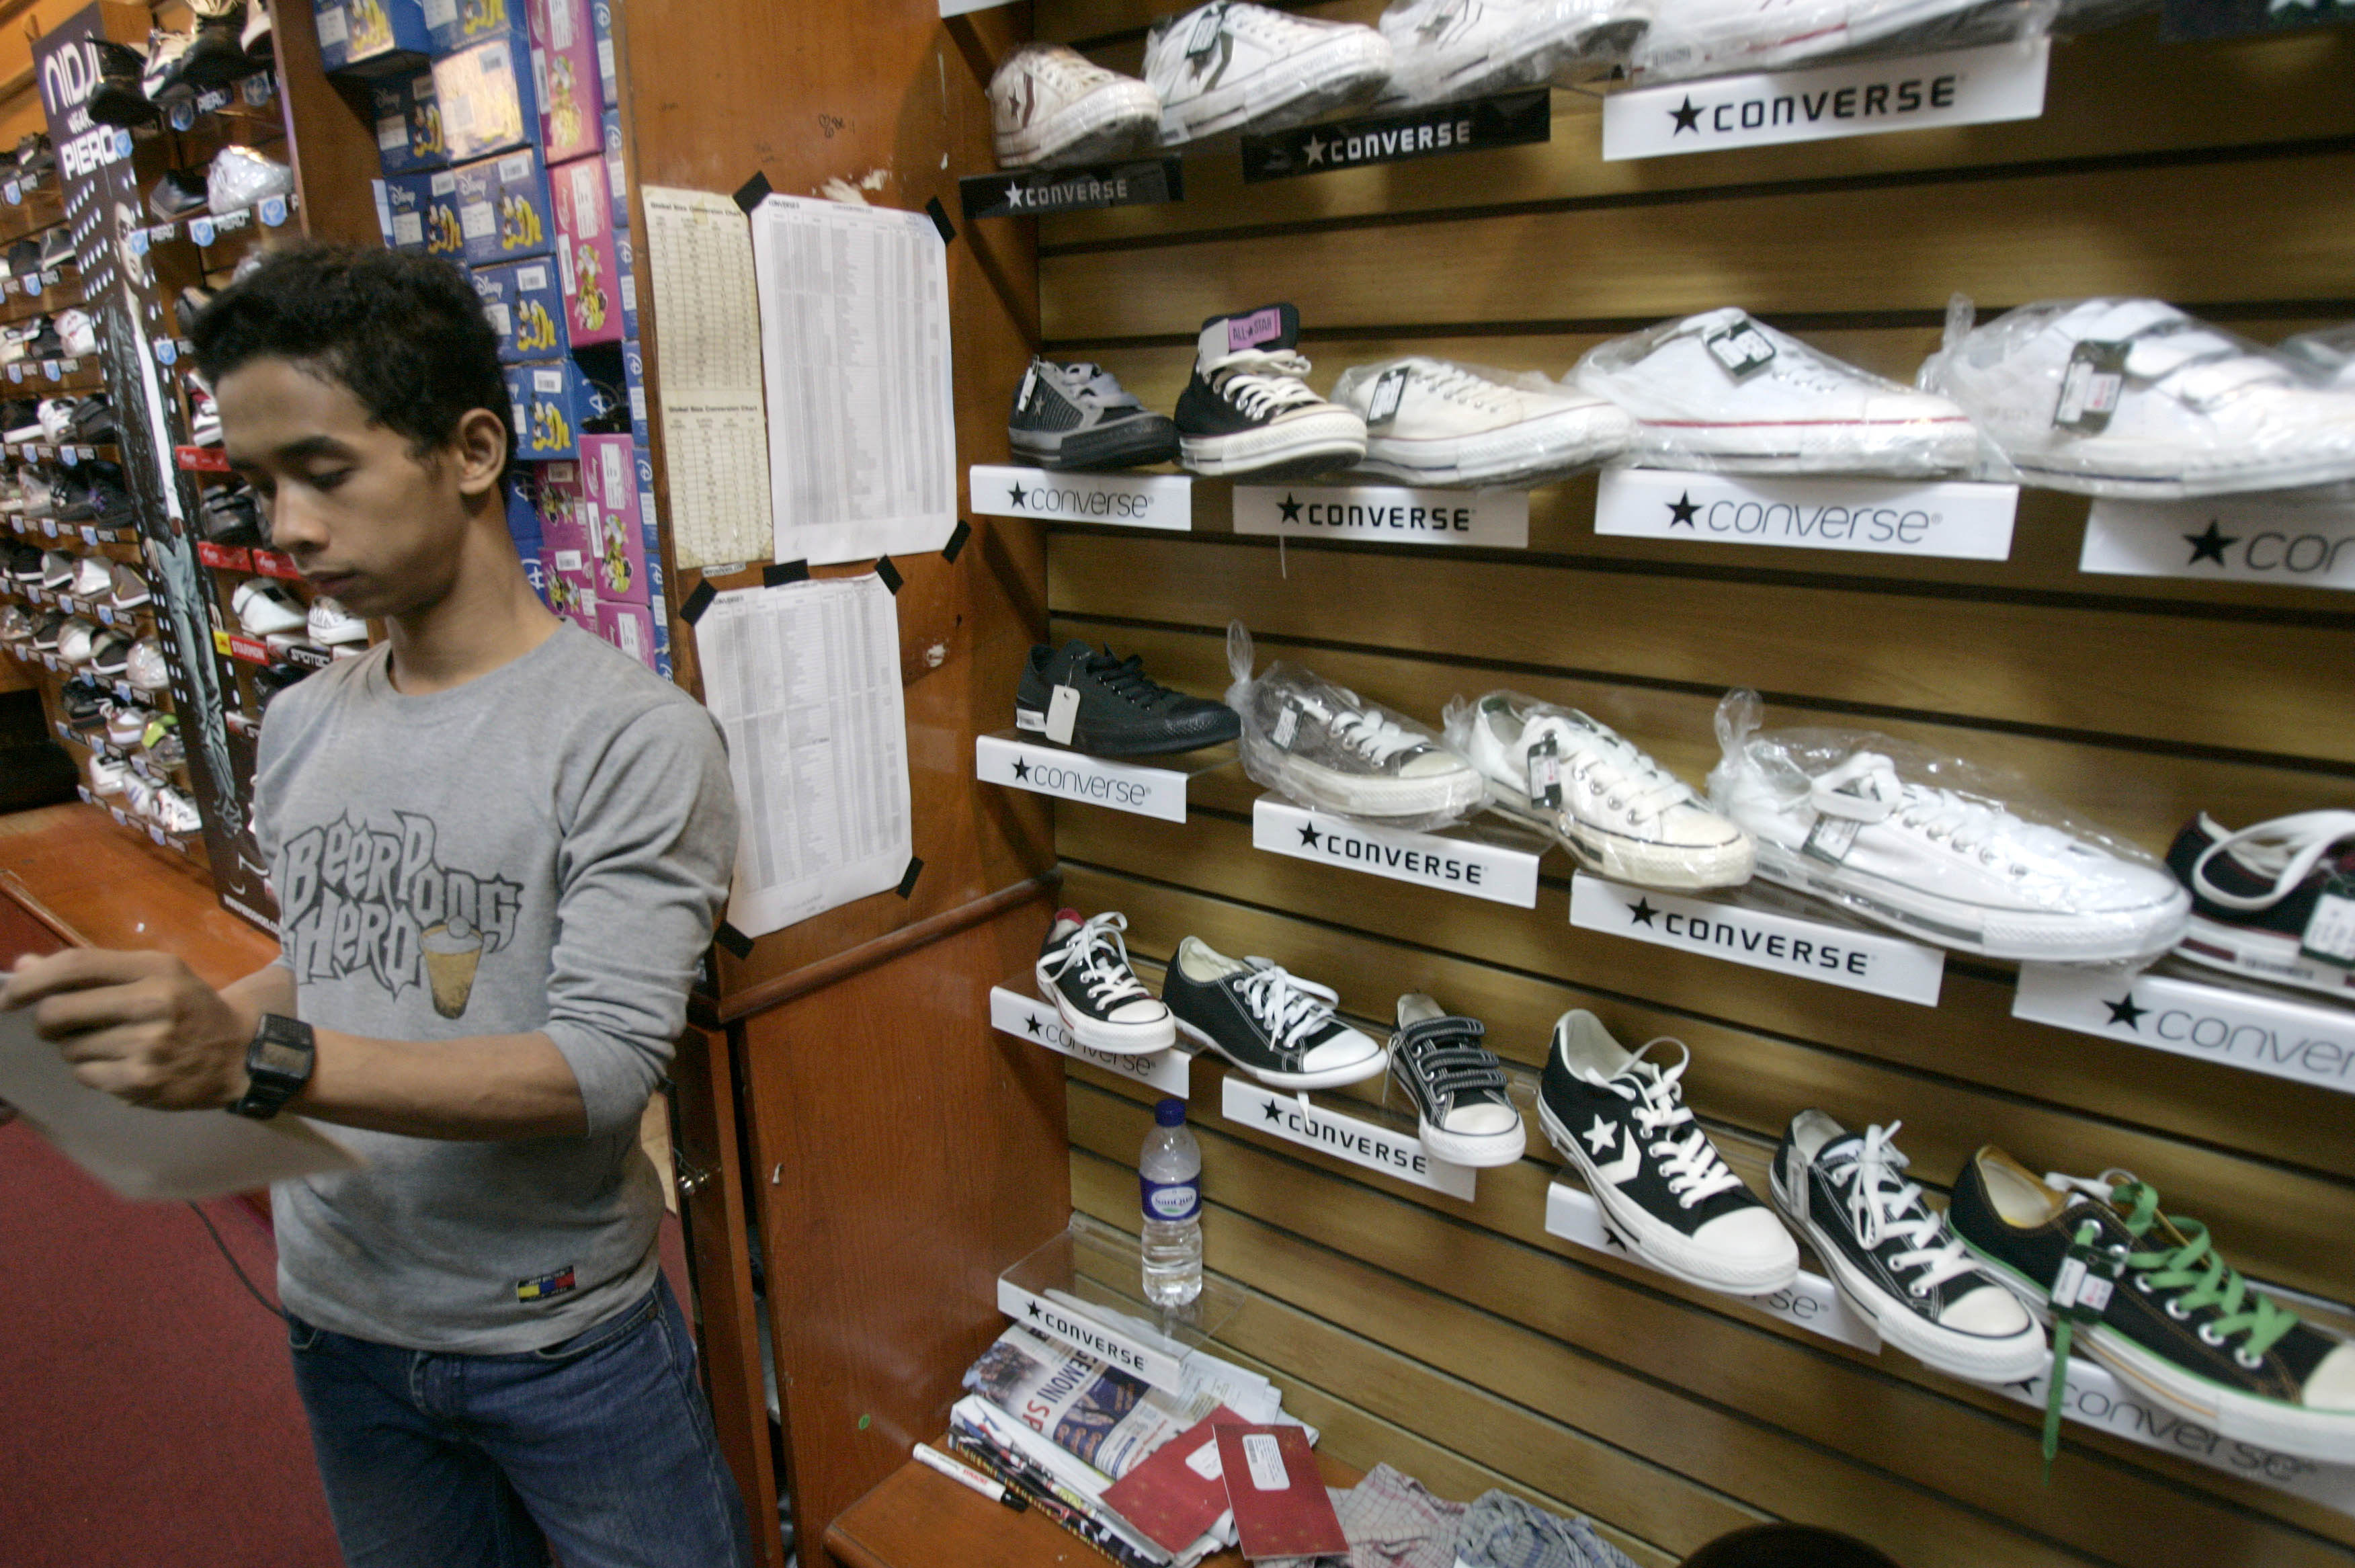 converse outlet store near me wc50  Nike faces claims of abuse from workers in Indonesia  The Spokesman-Review